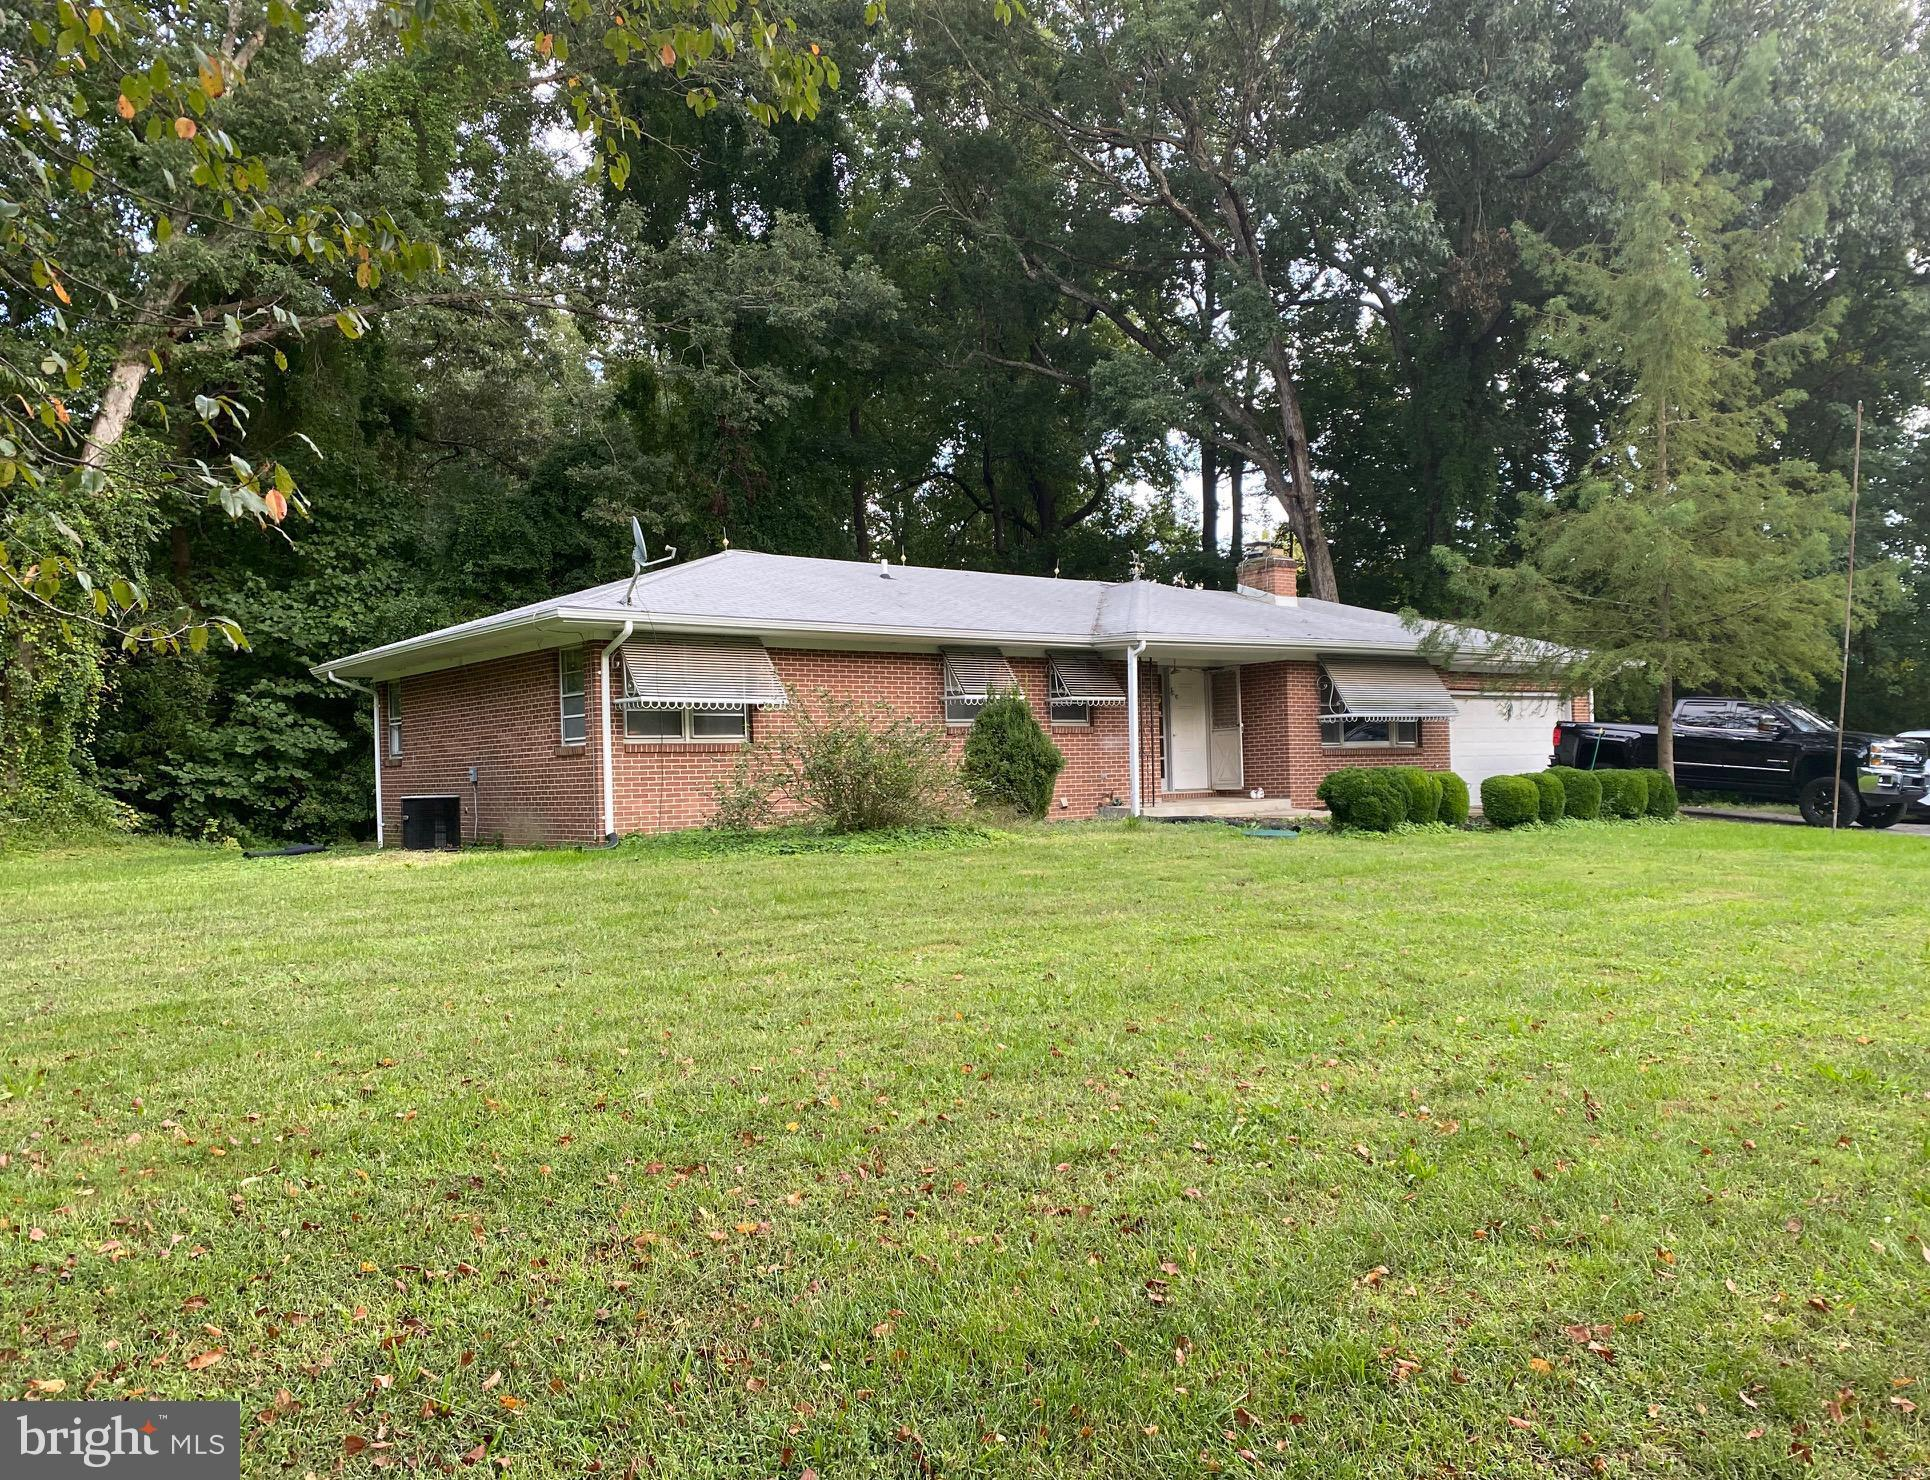 New Photos of Beautiful Home Coming Soon! This Solid All Brick Rambler on Two Acres in Northern Calv